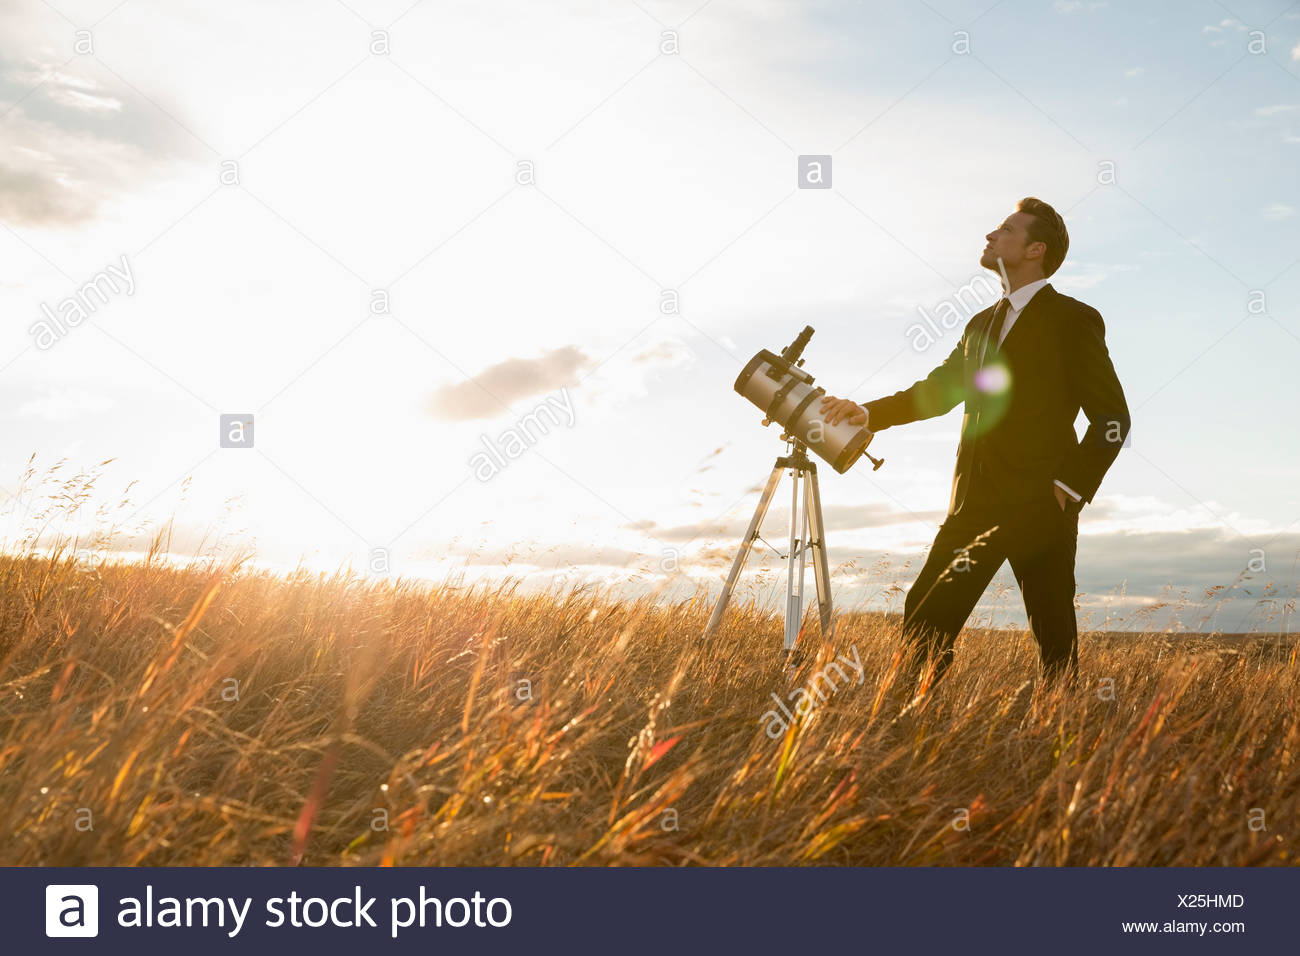 Businessman with telescope on field - Stock Image